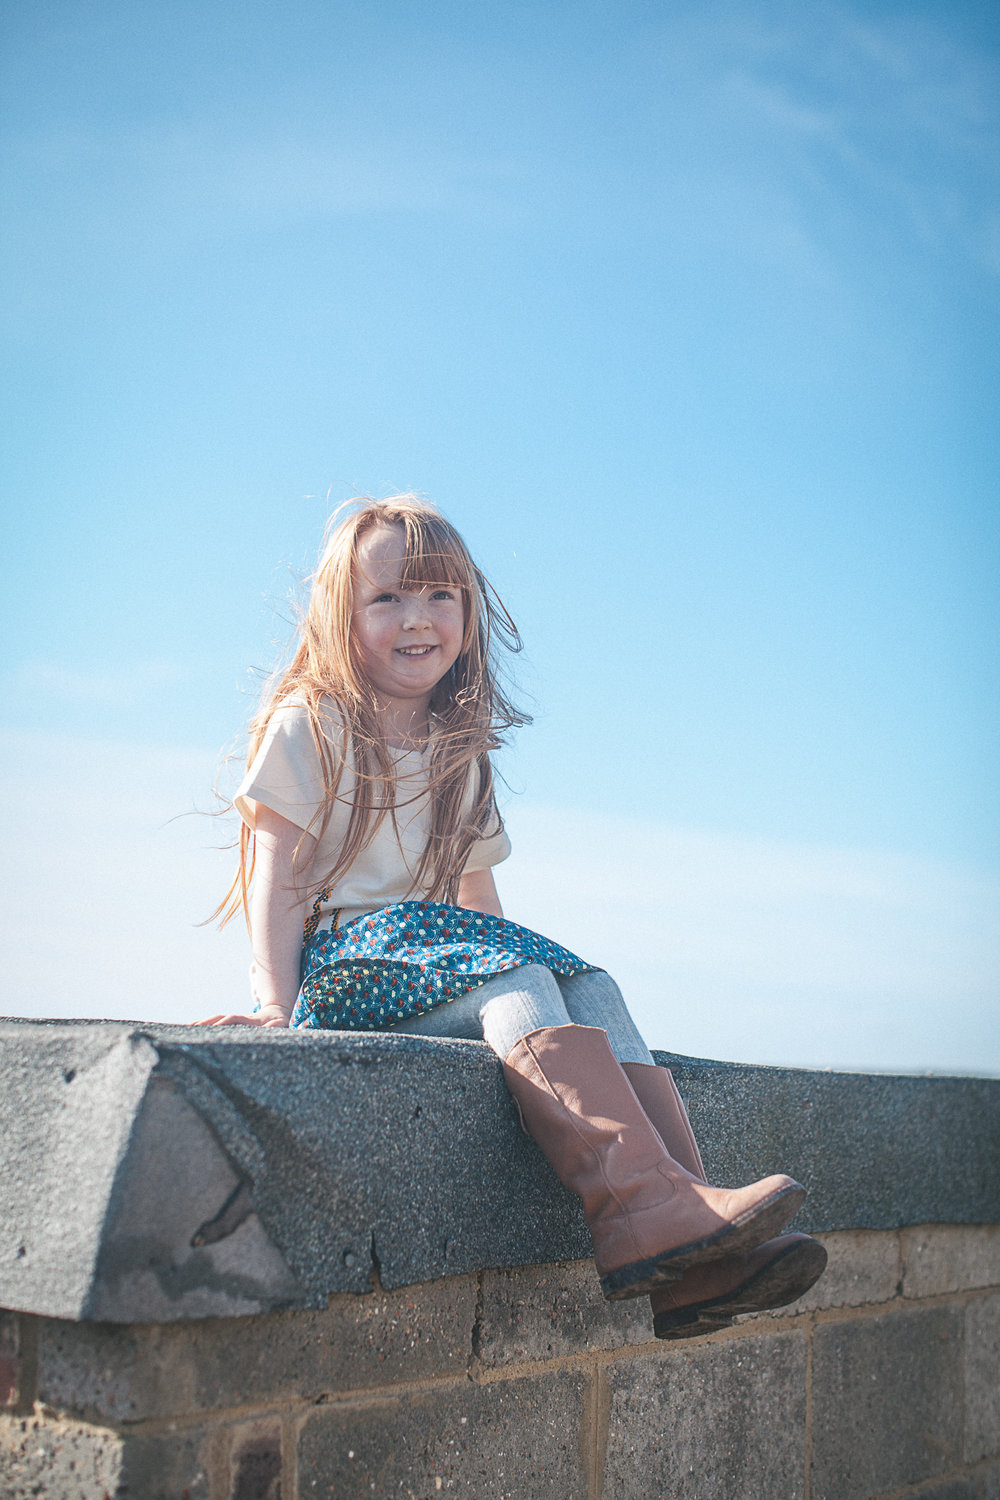 ethical_childrens_clothing_231013_042.jpg